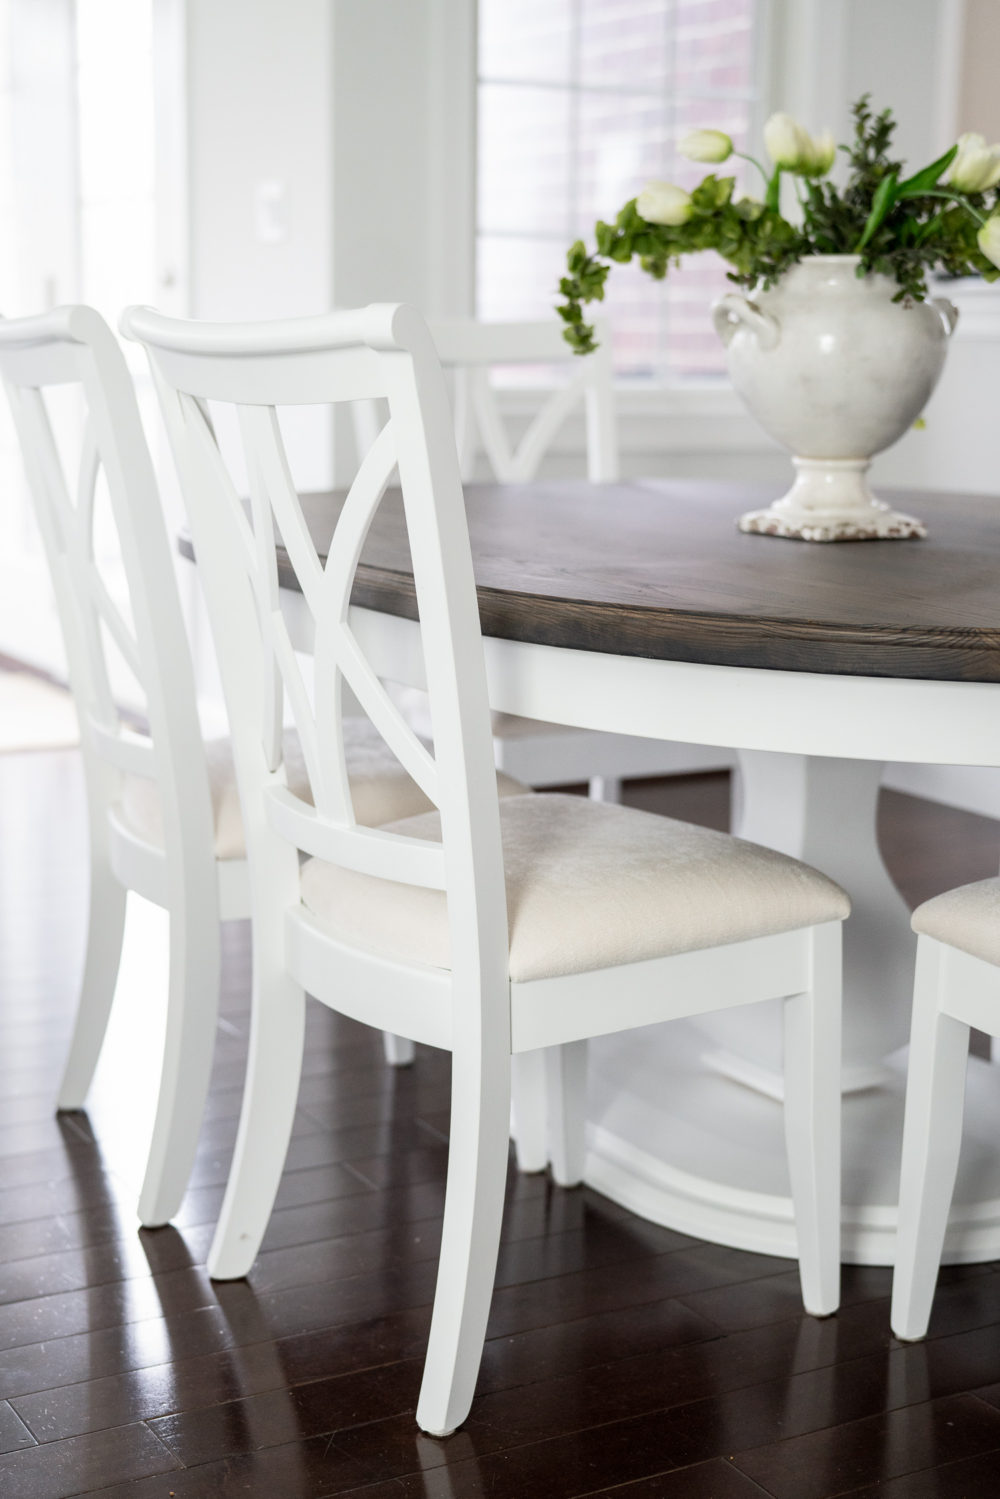 Petite Fashion Blog |White Kitchen | Inset Cabinets | From Overlay to Inset | Rustic Elements Furniture